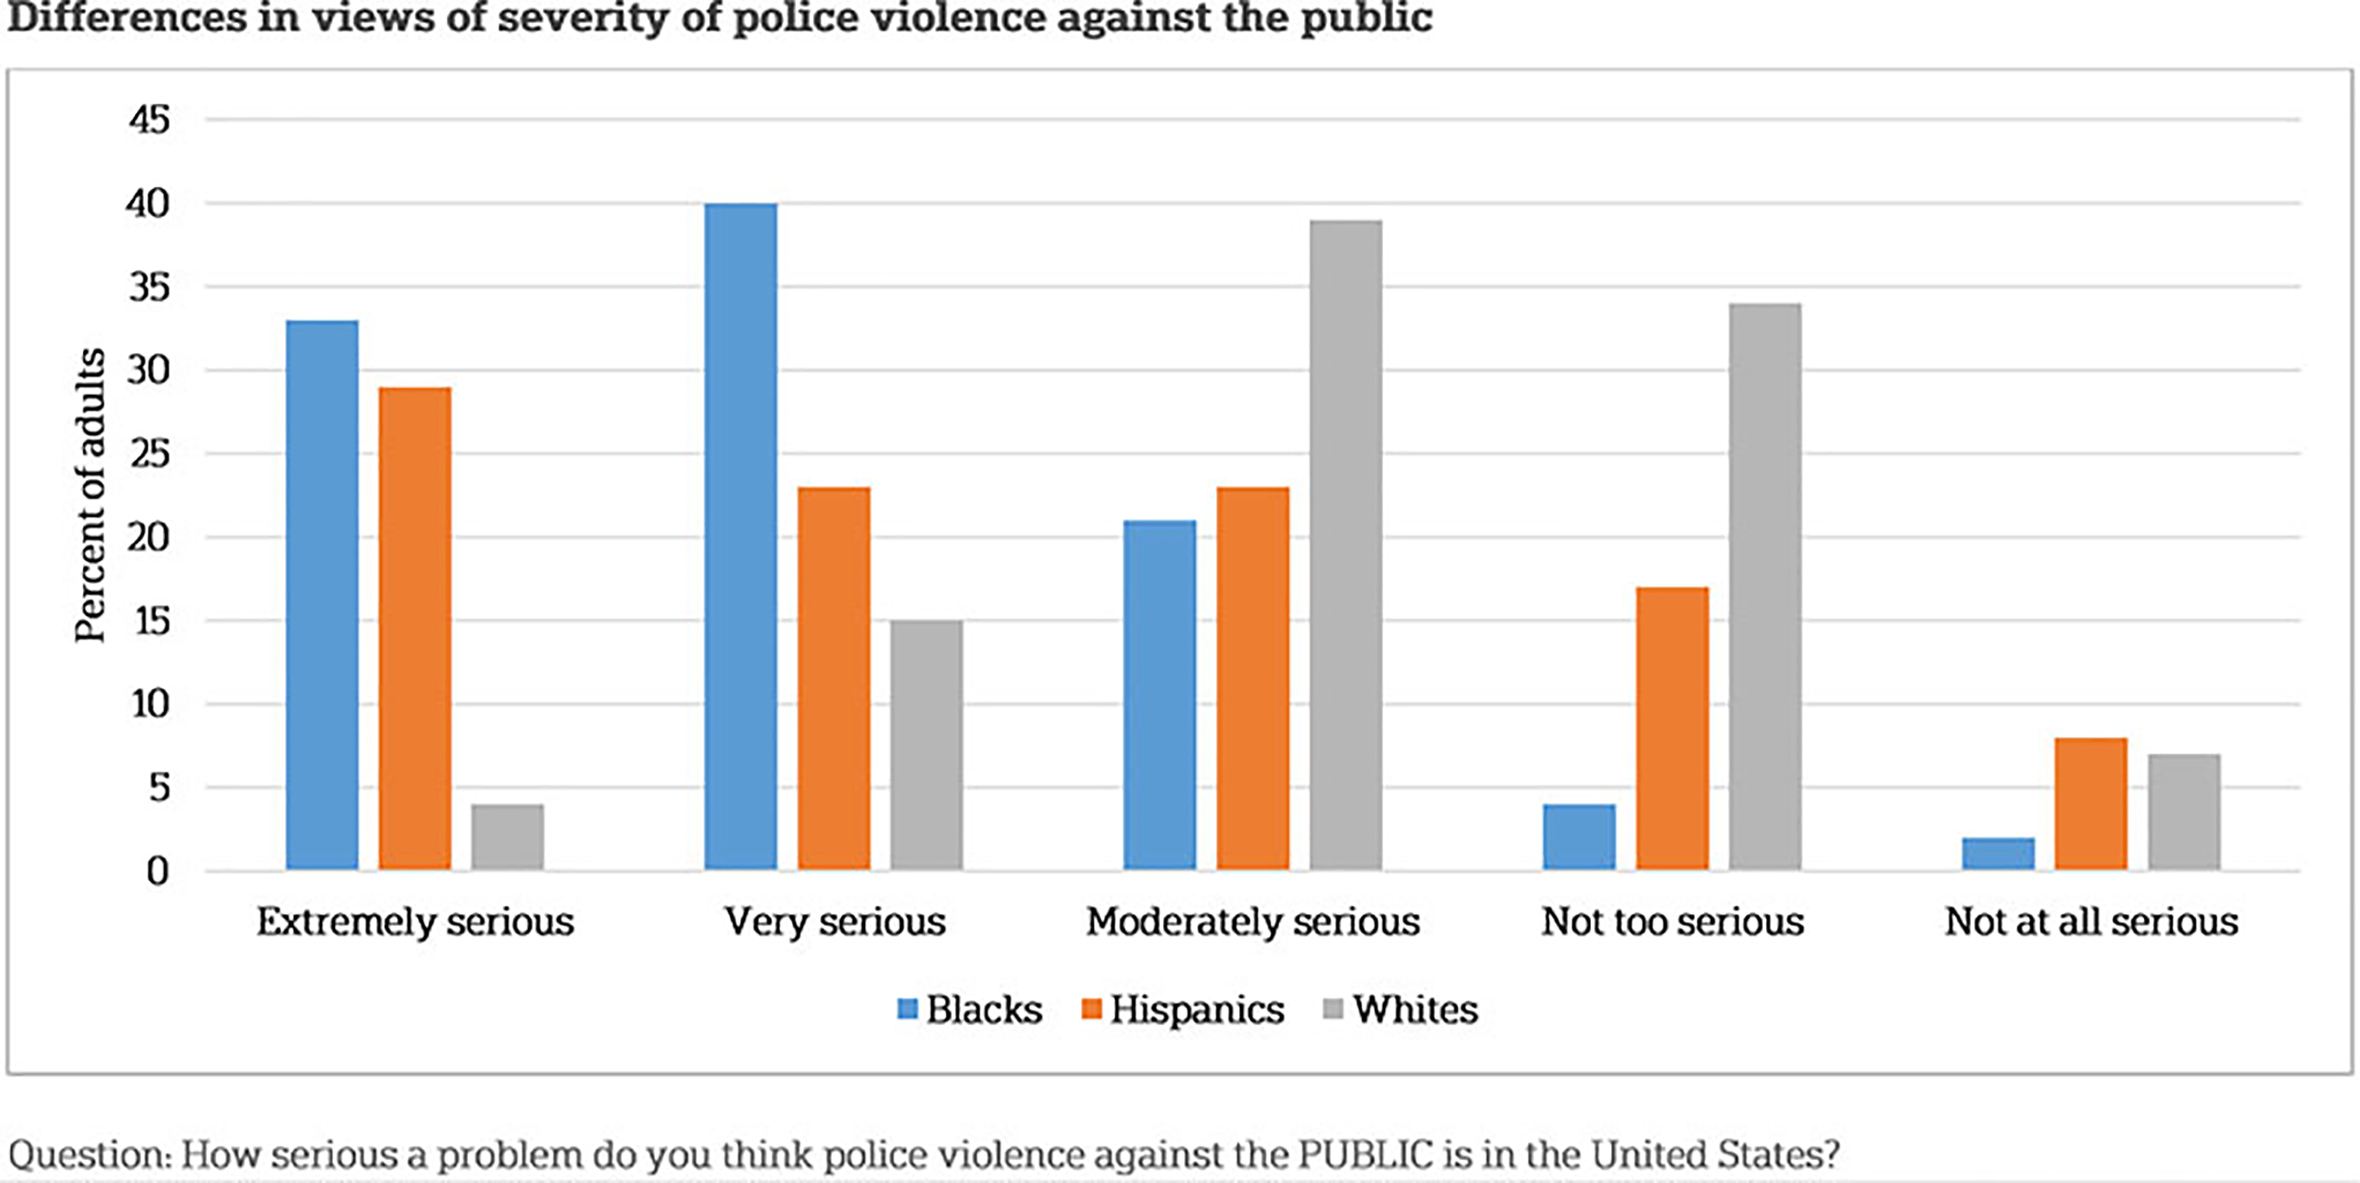 A graph showing the differences in views of severity of police violence against the public